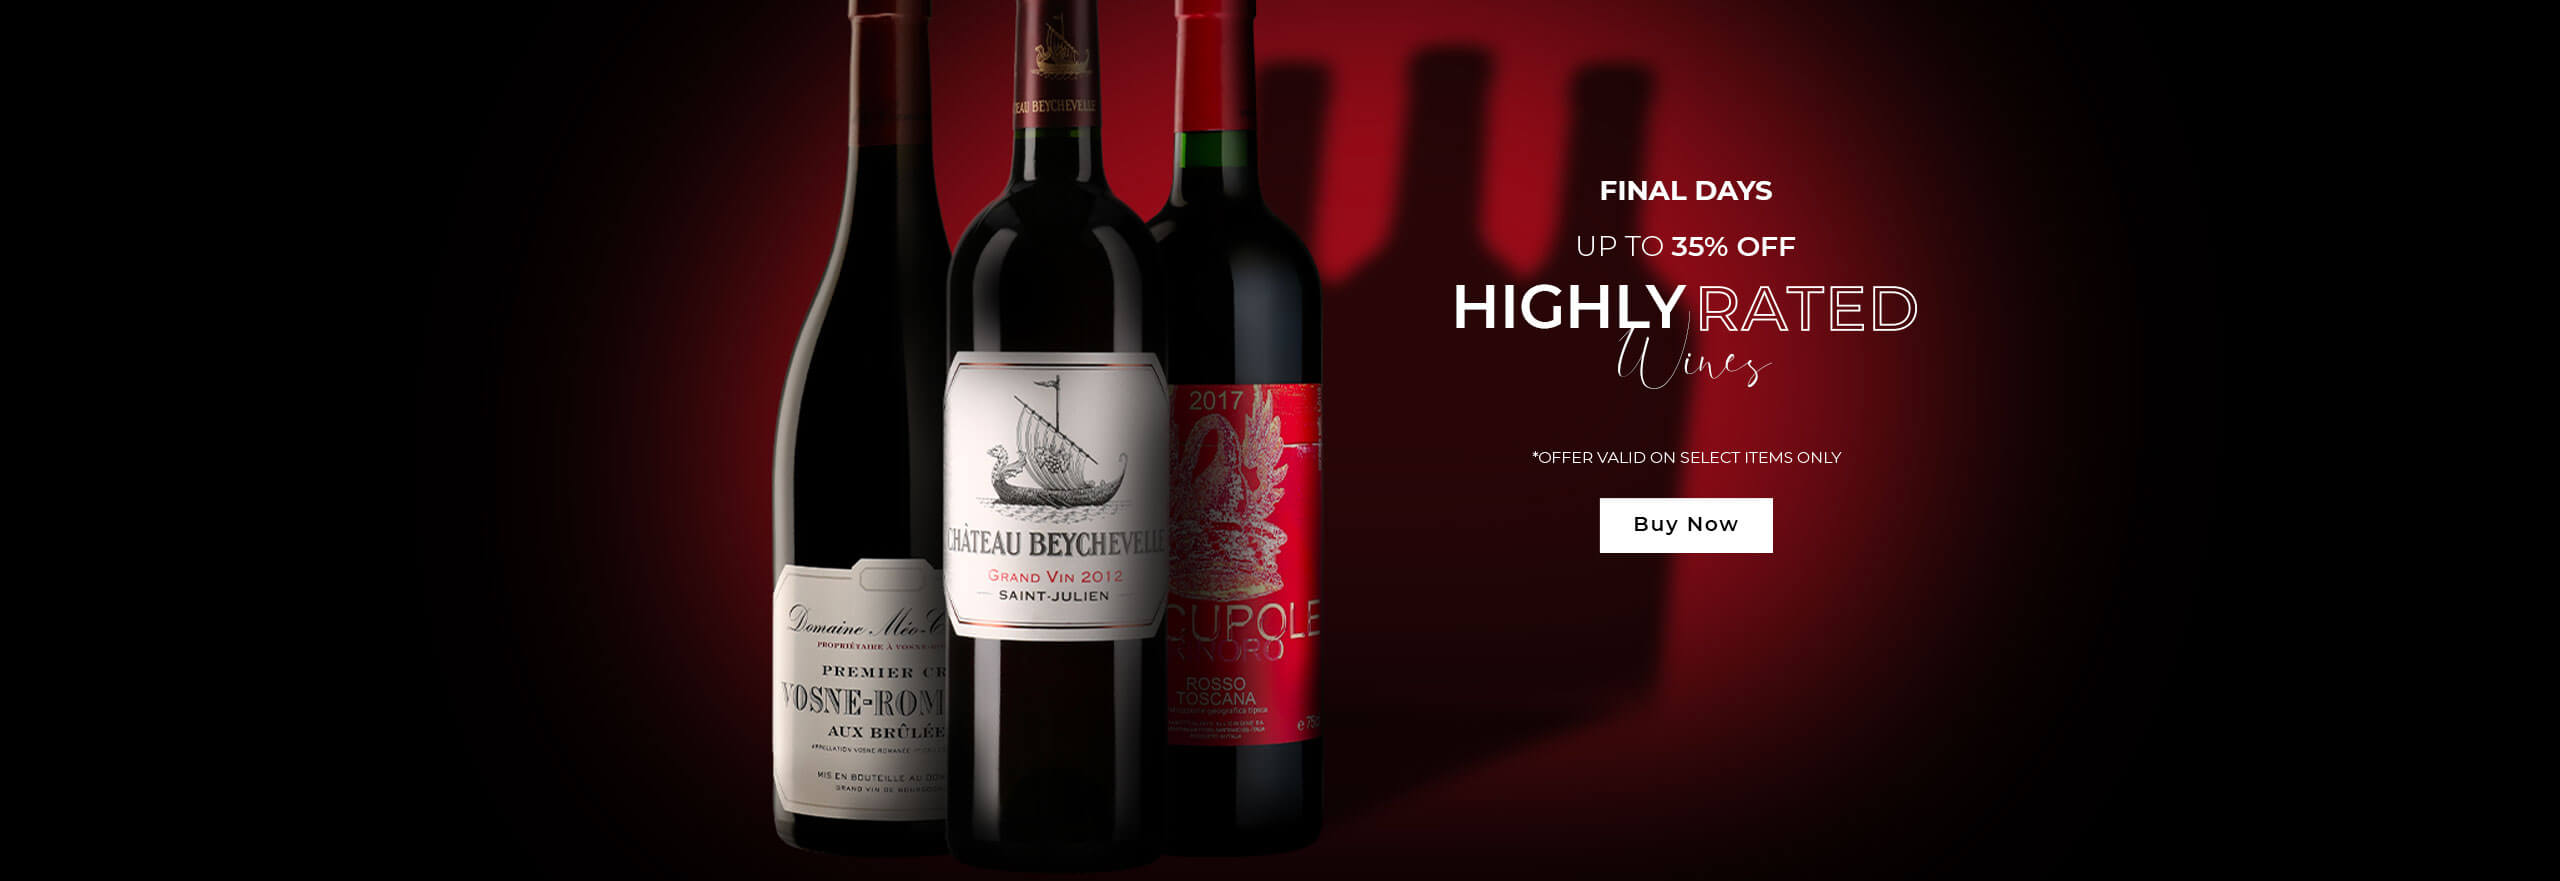 Up to 30% off highly-rated wines